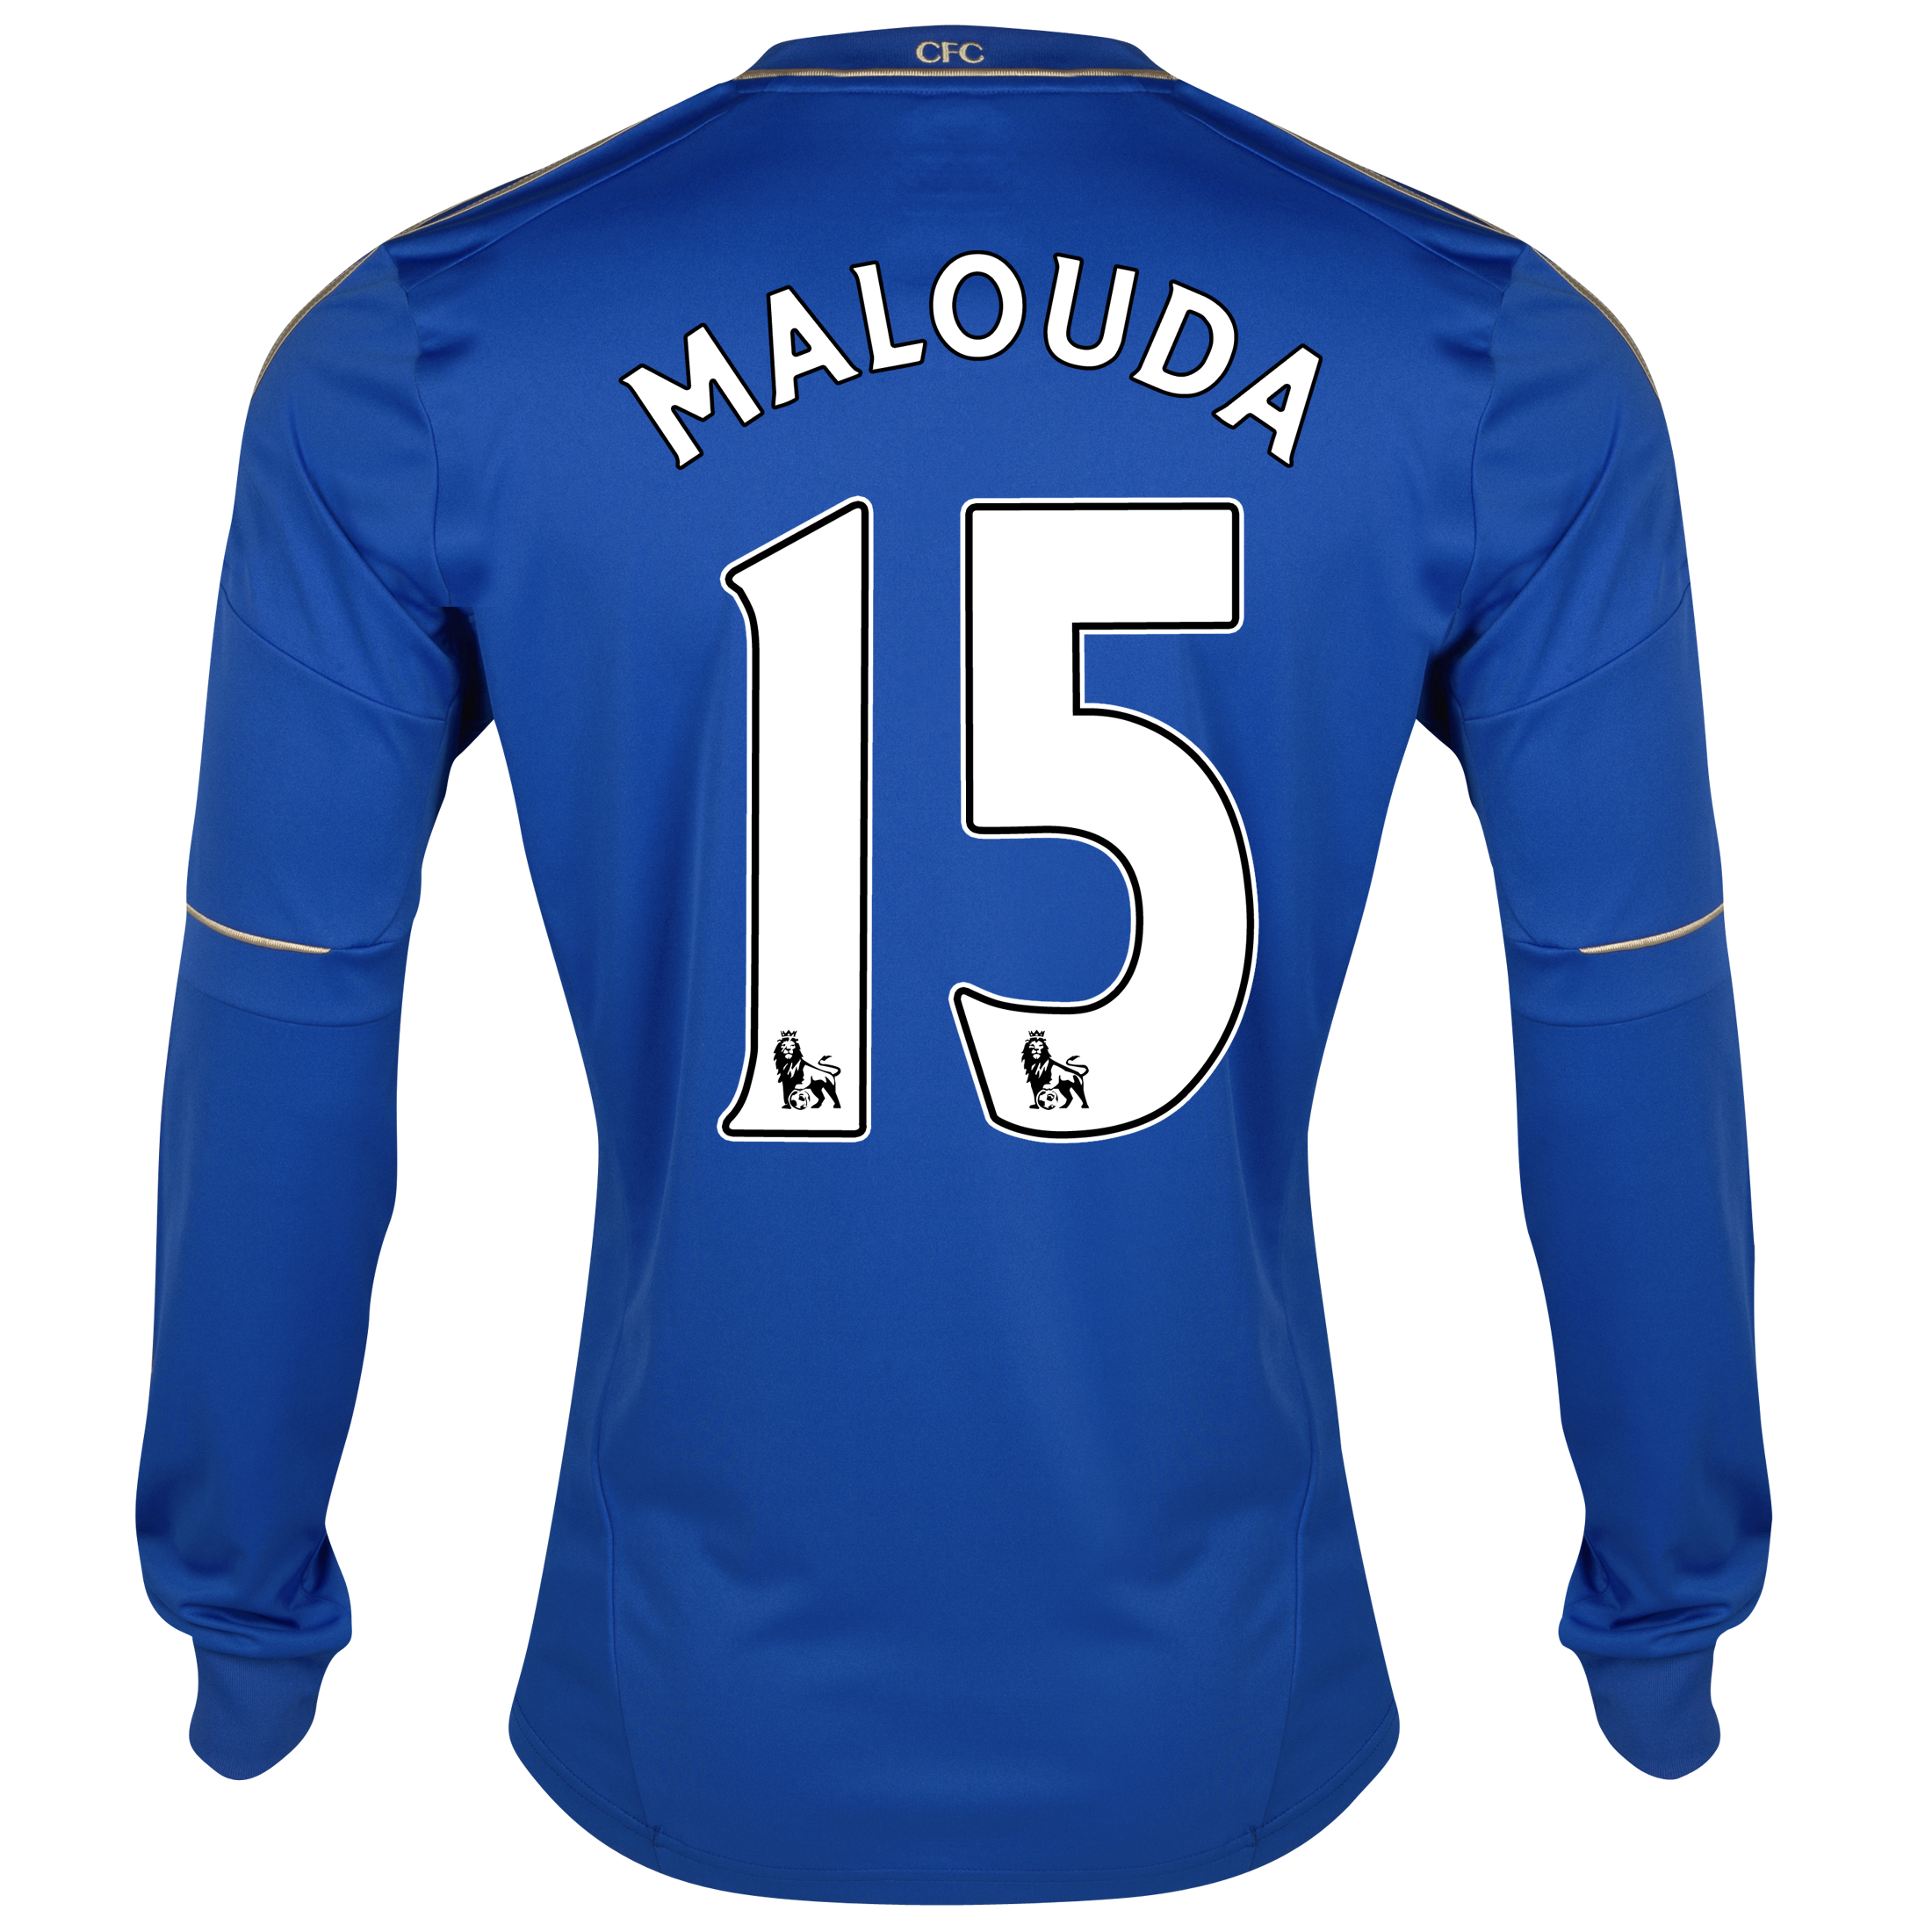 Chelsea Home Shirt 2012/13 - Long Sleeved with Malouda 15 printing